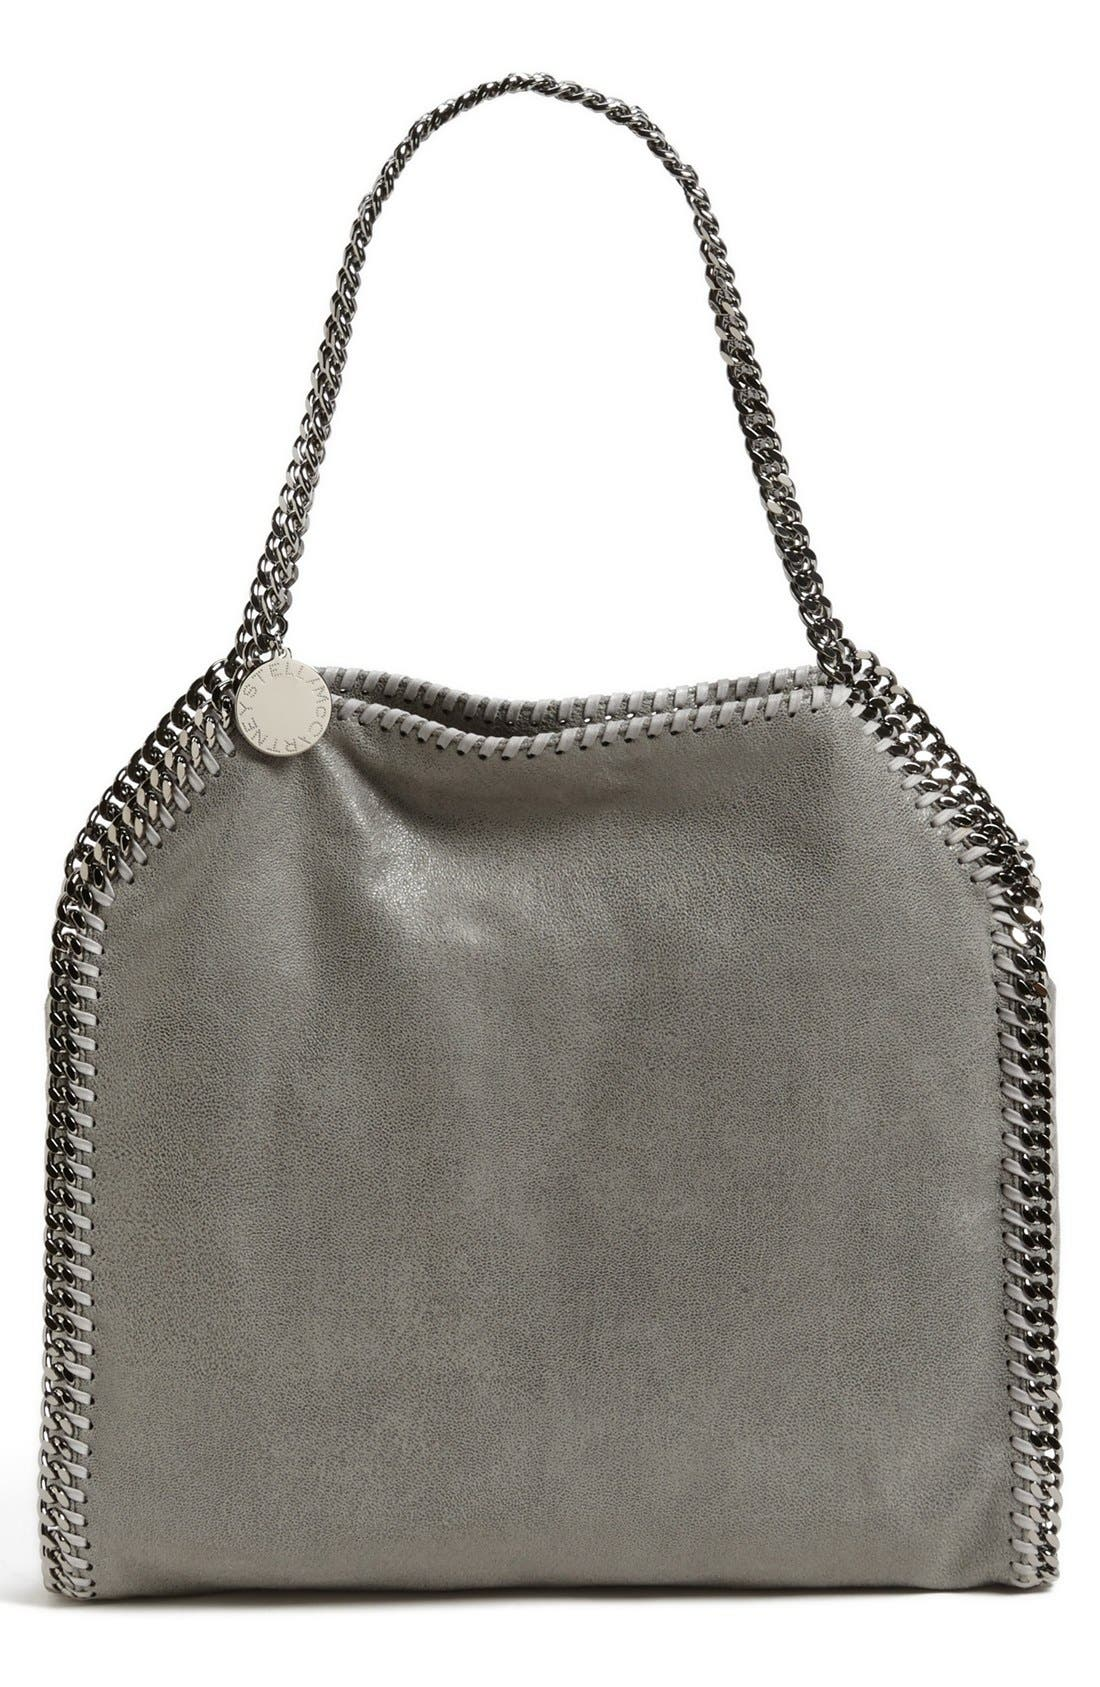 'Small Falabella - Shaggy Deer' Faux Leather Tote,                             Main thumbnail 1, color,                             LT.GREY